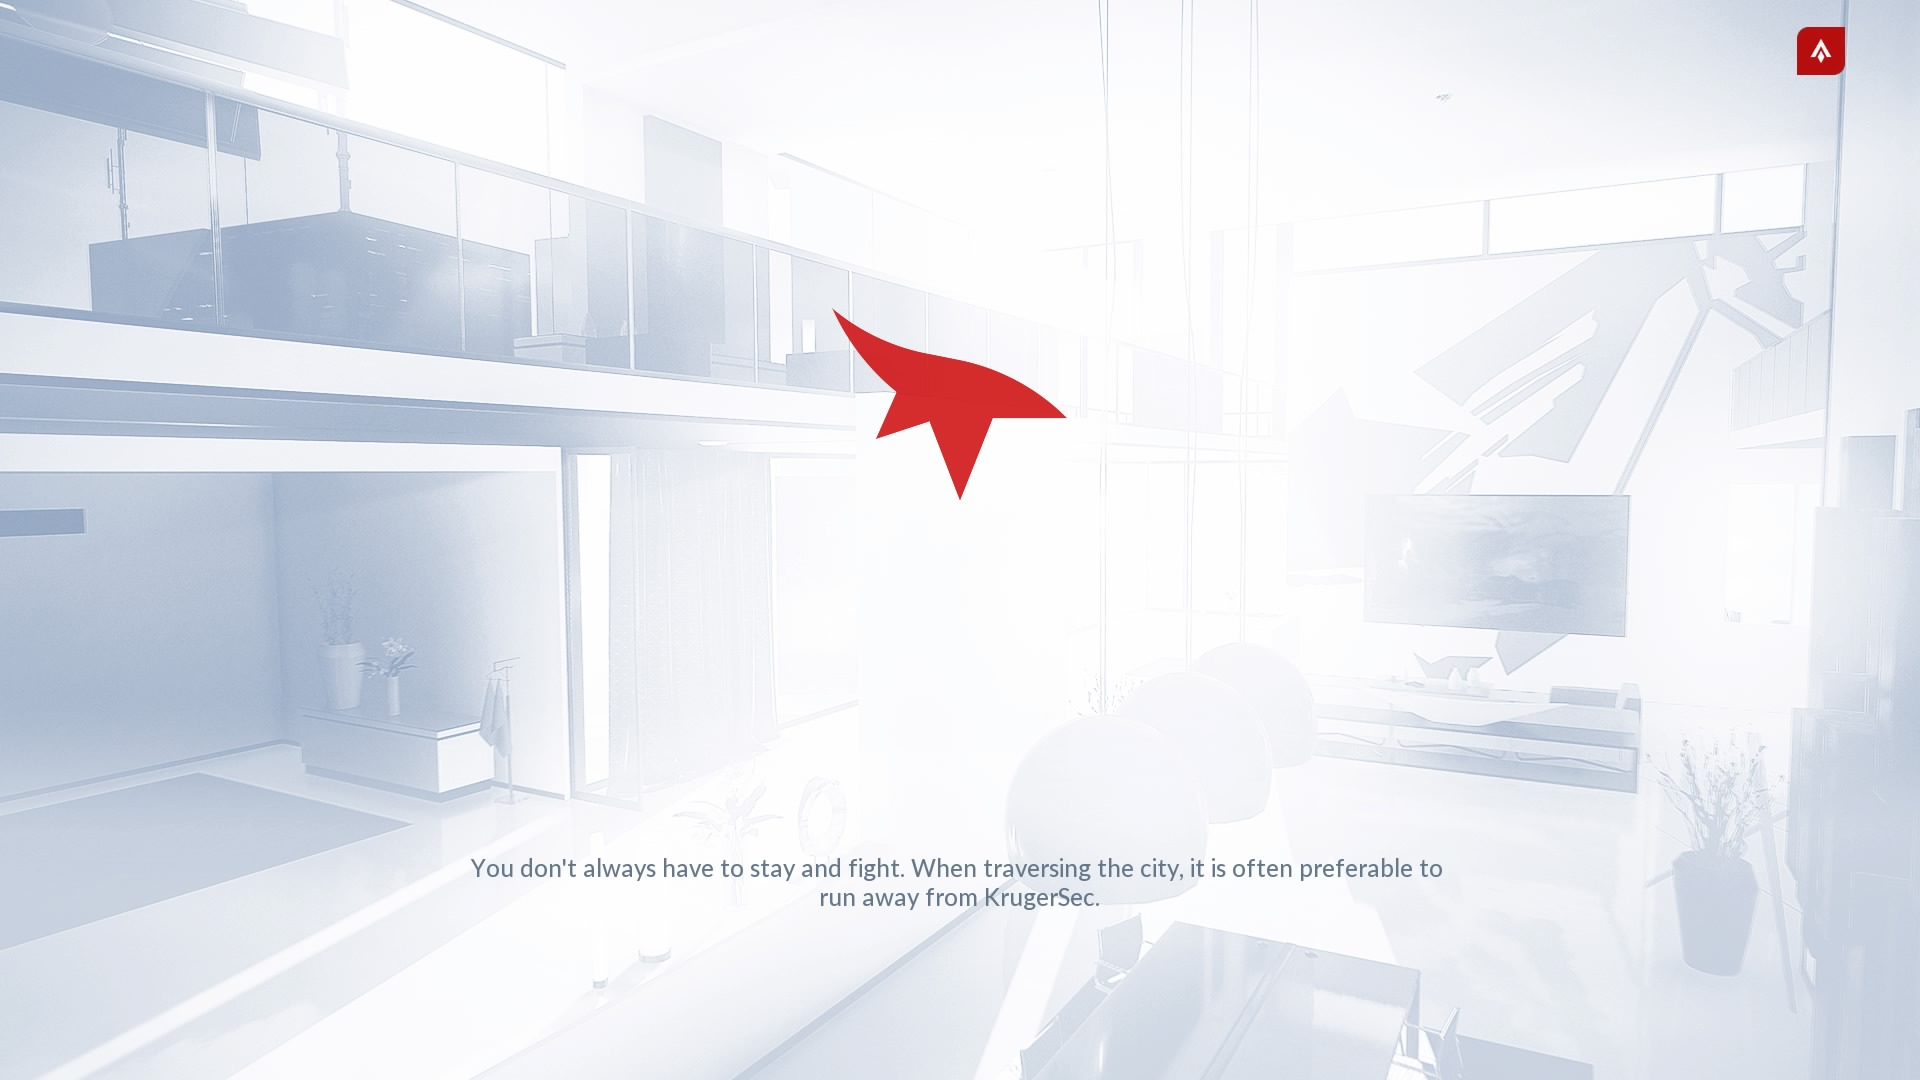 mirrors edge catalyst - loading screen saying it is often preferable to run away than fight